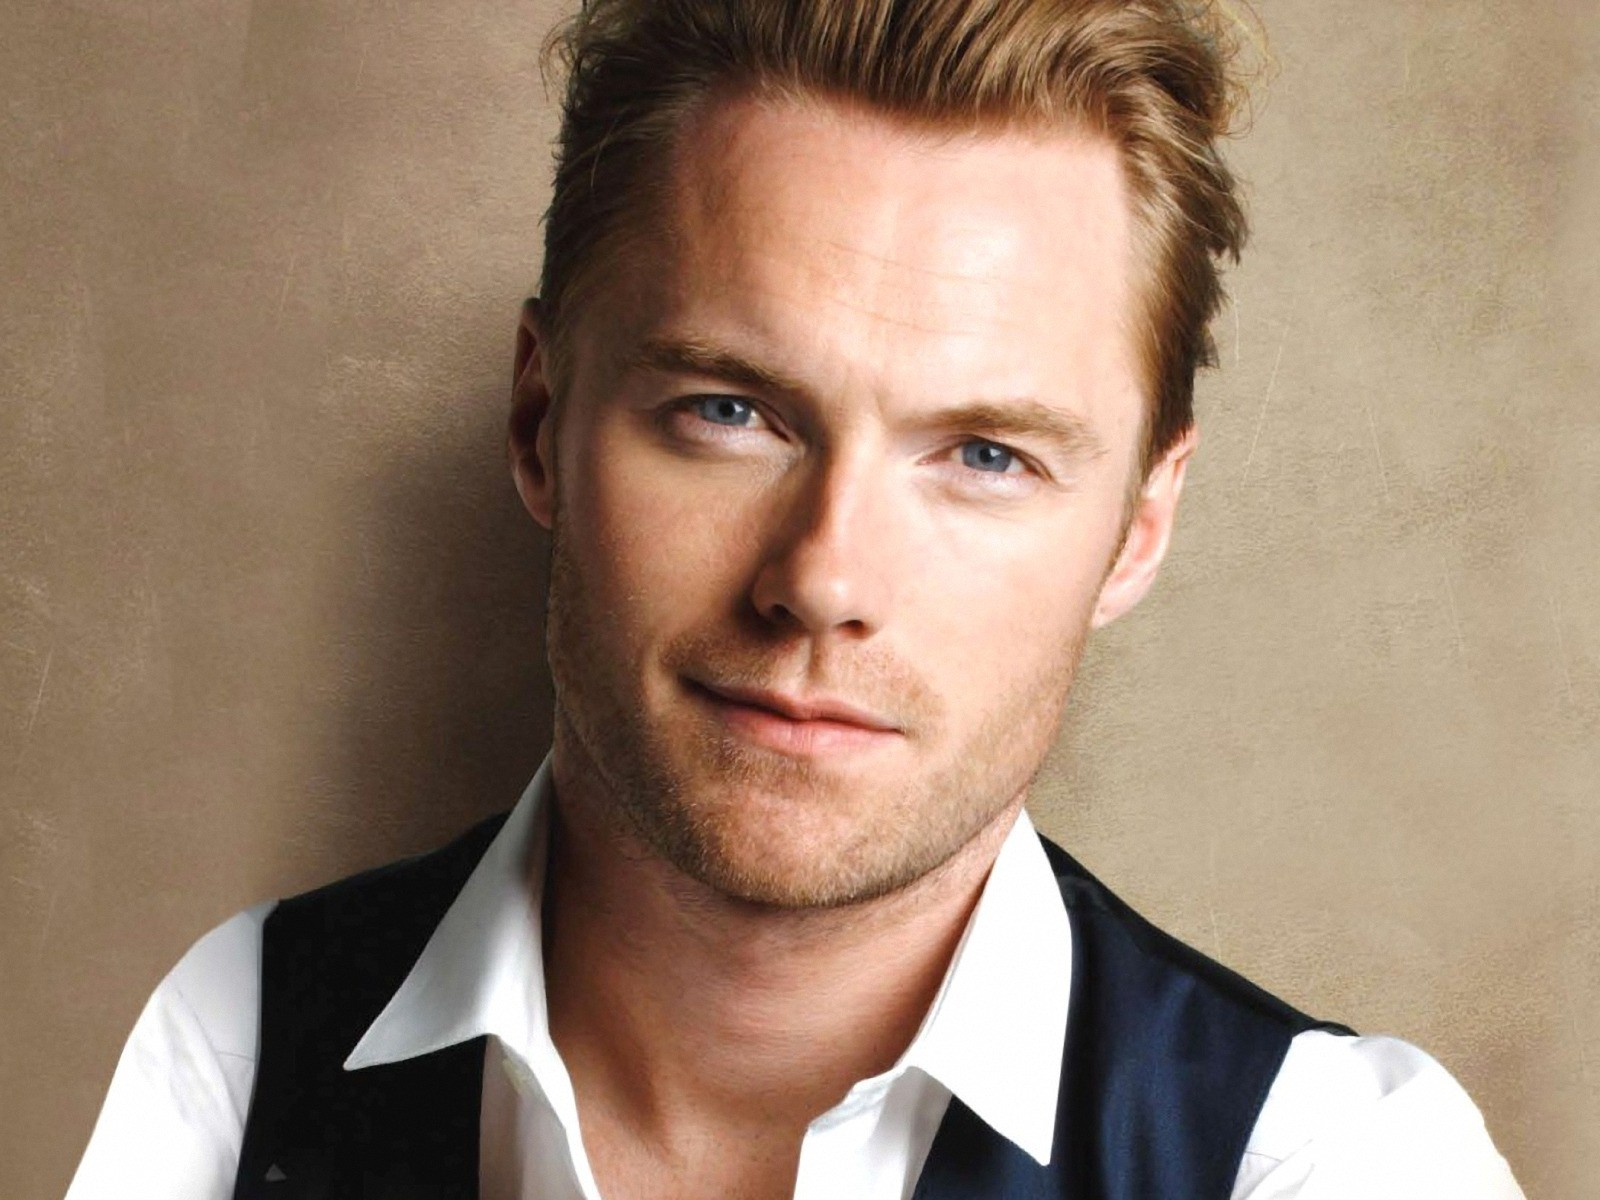 Ronan Keating younger photo  at secondhandsongs.com